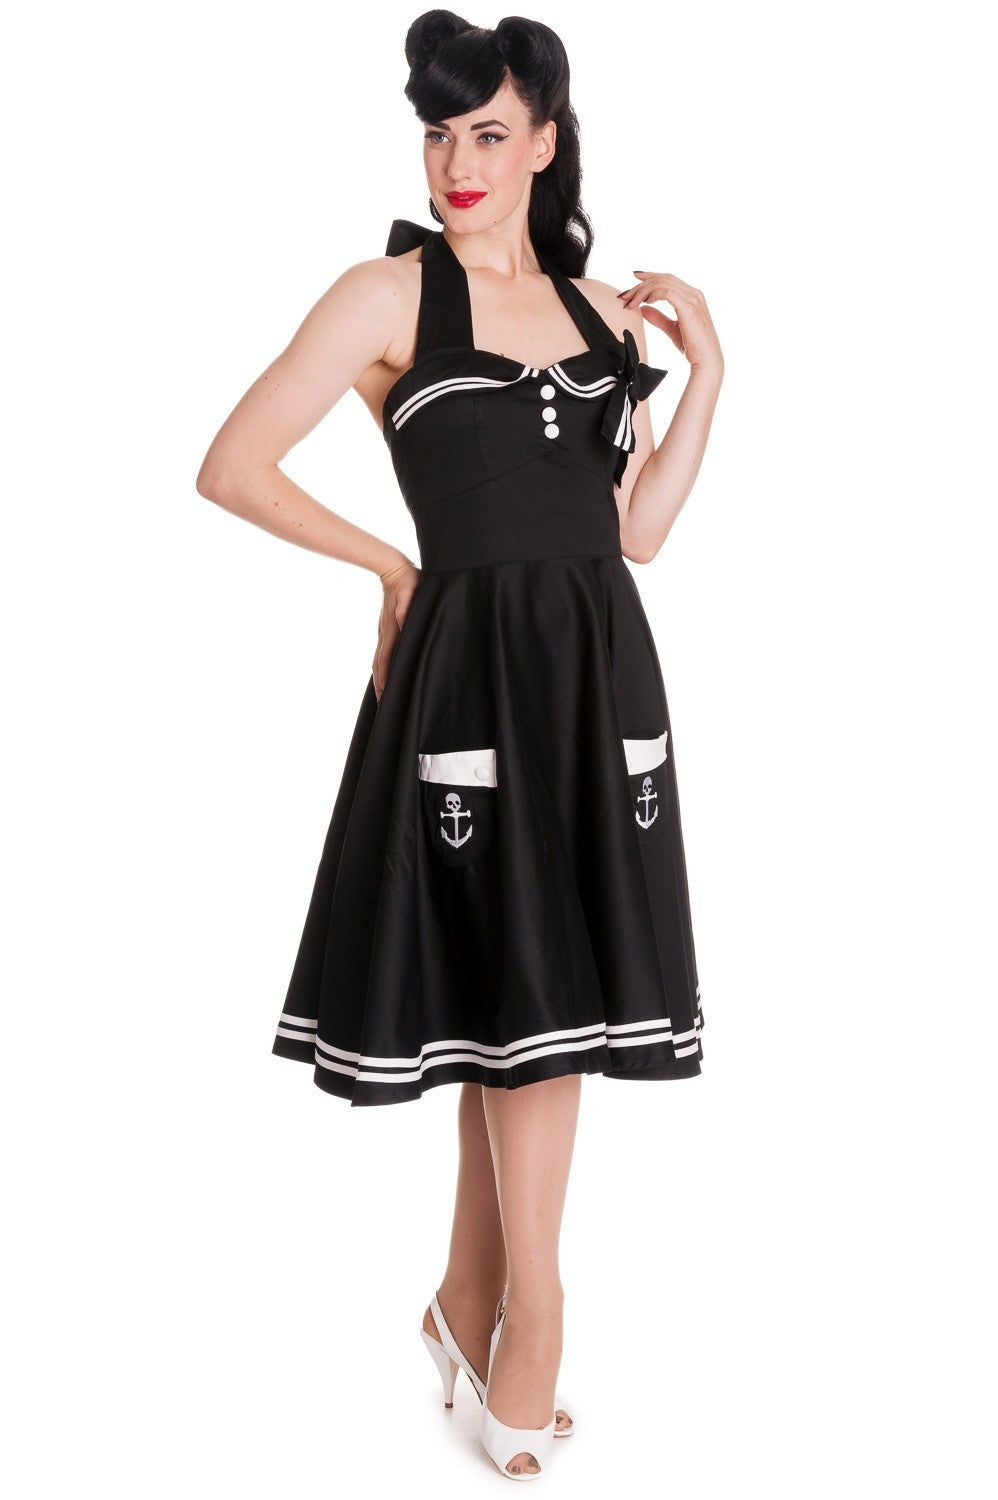 Motley 50's Anchor Dress